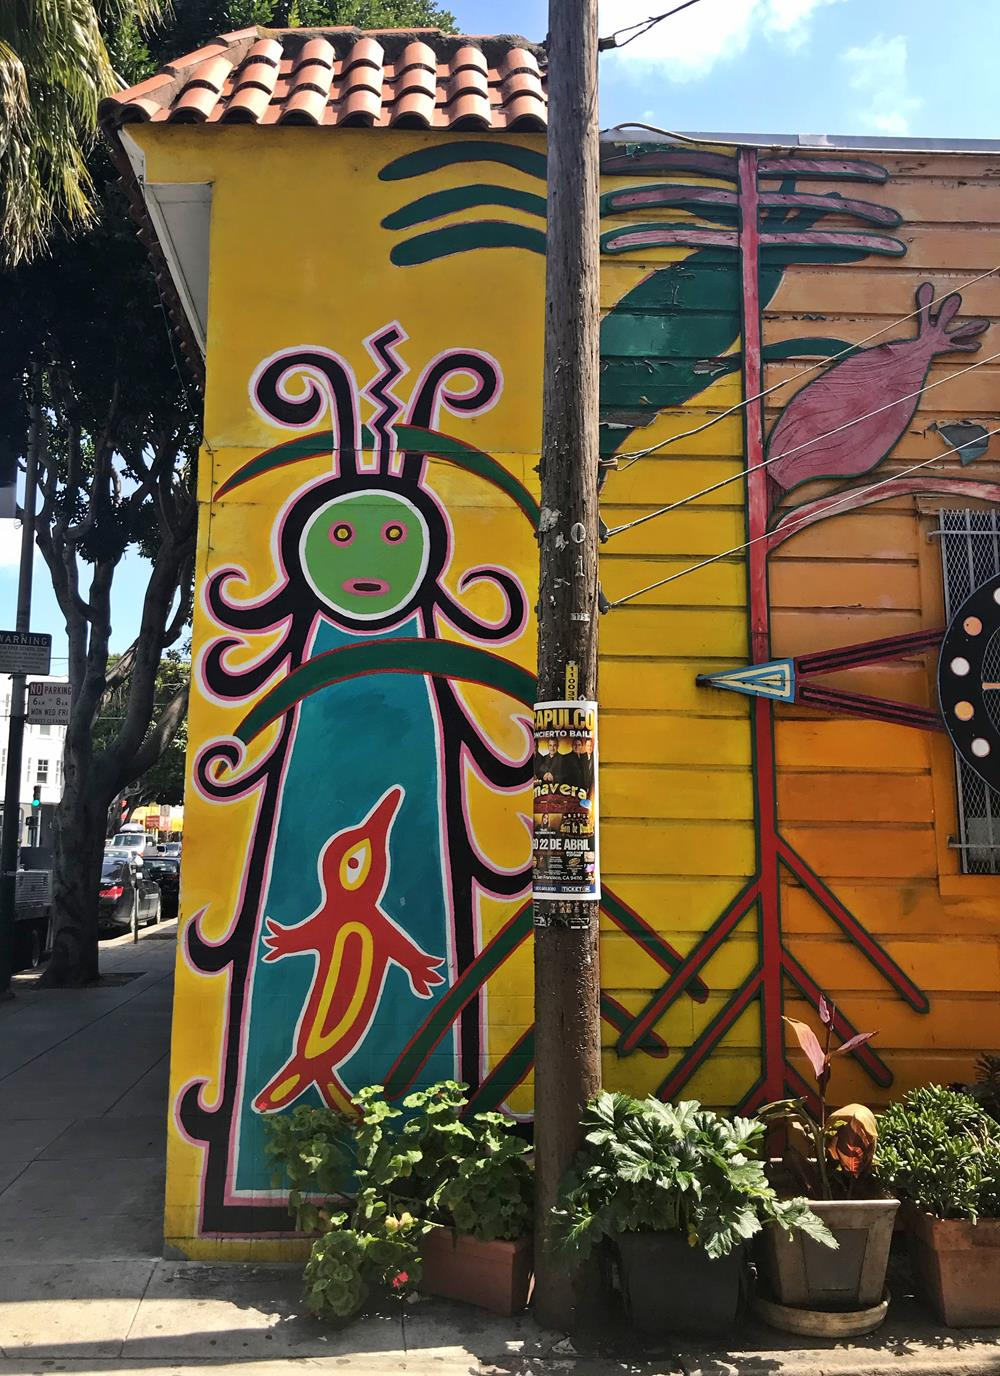 San Francisco Street Art Tour A Collection Of Stunning Murals And